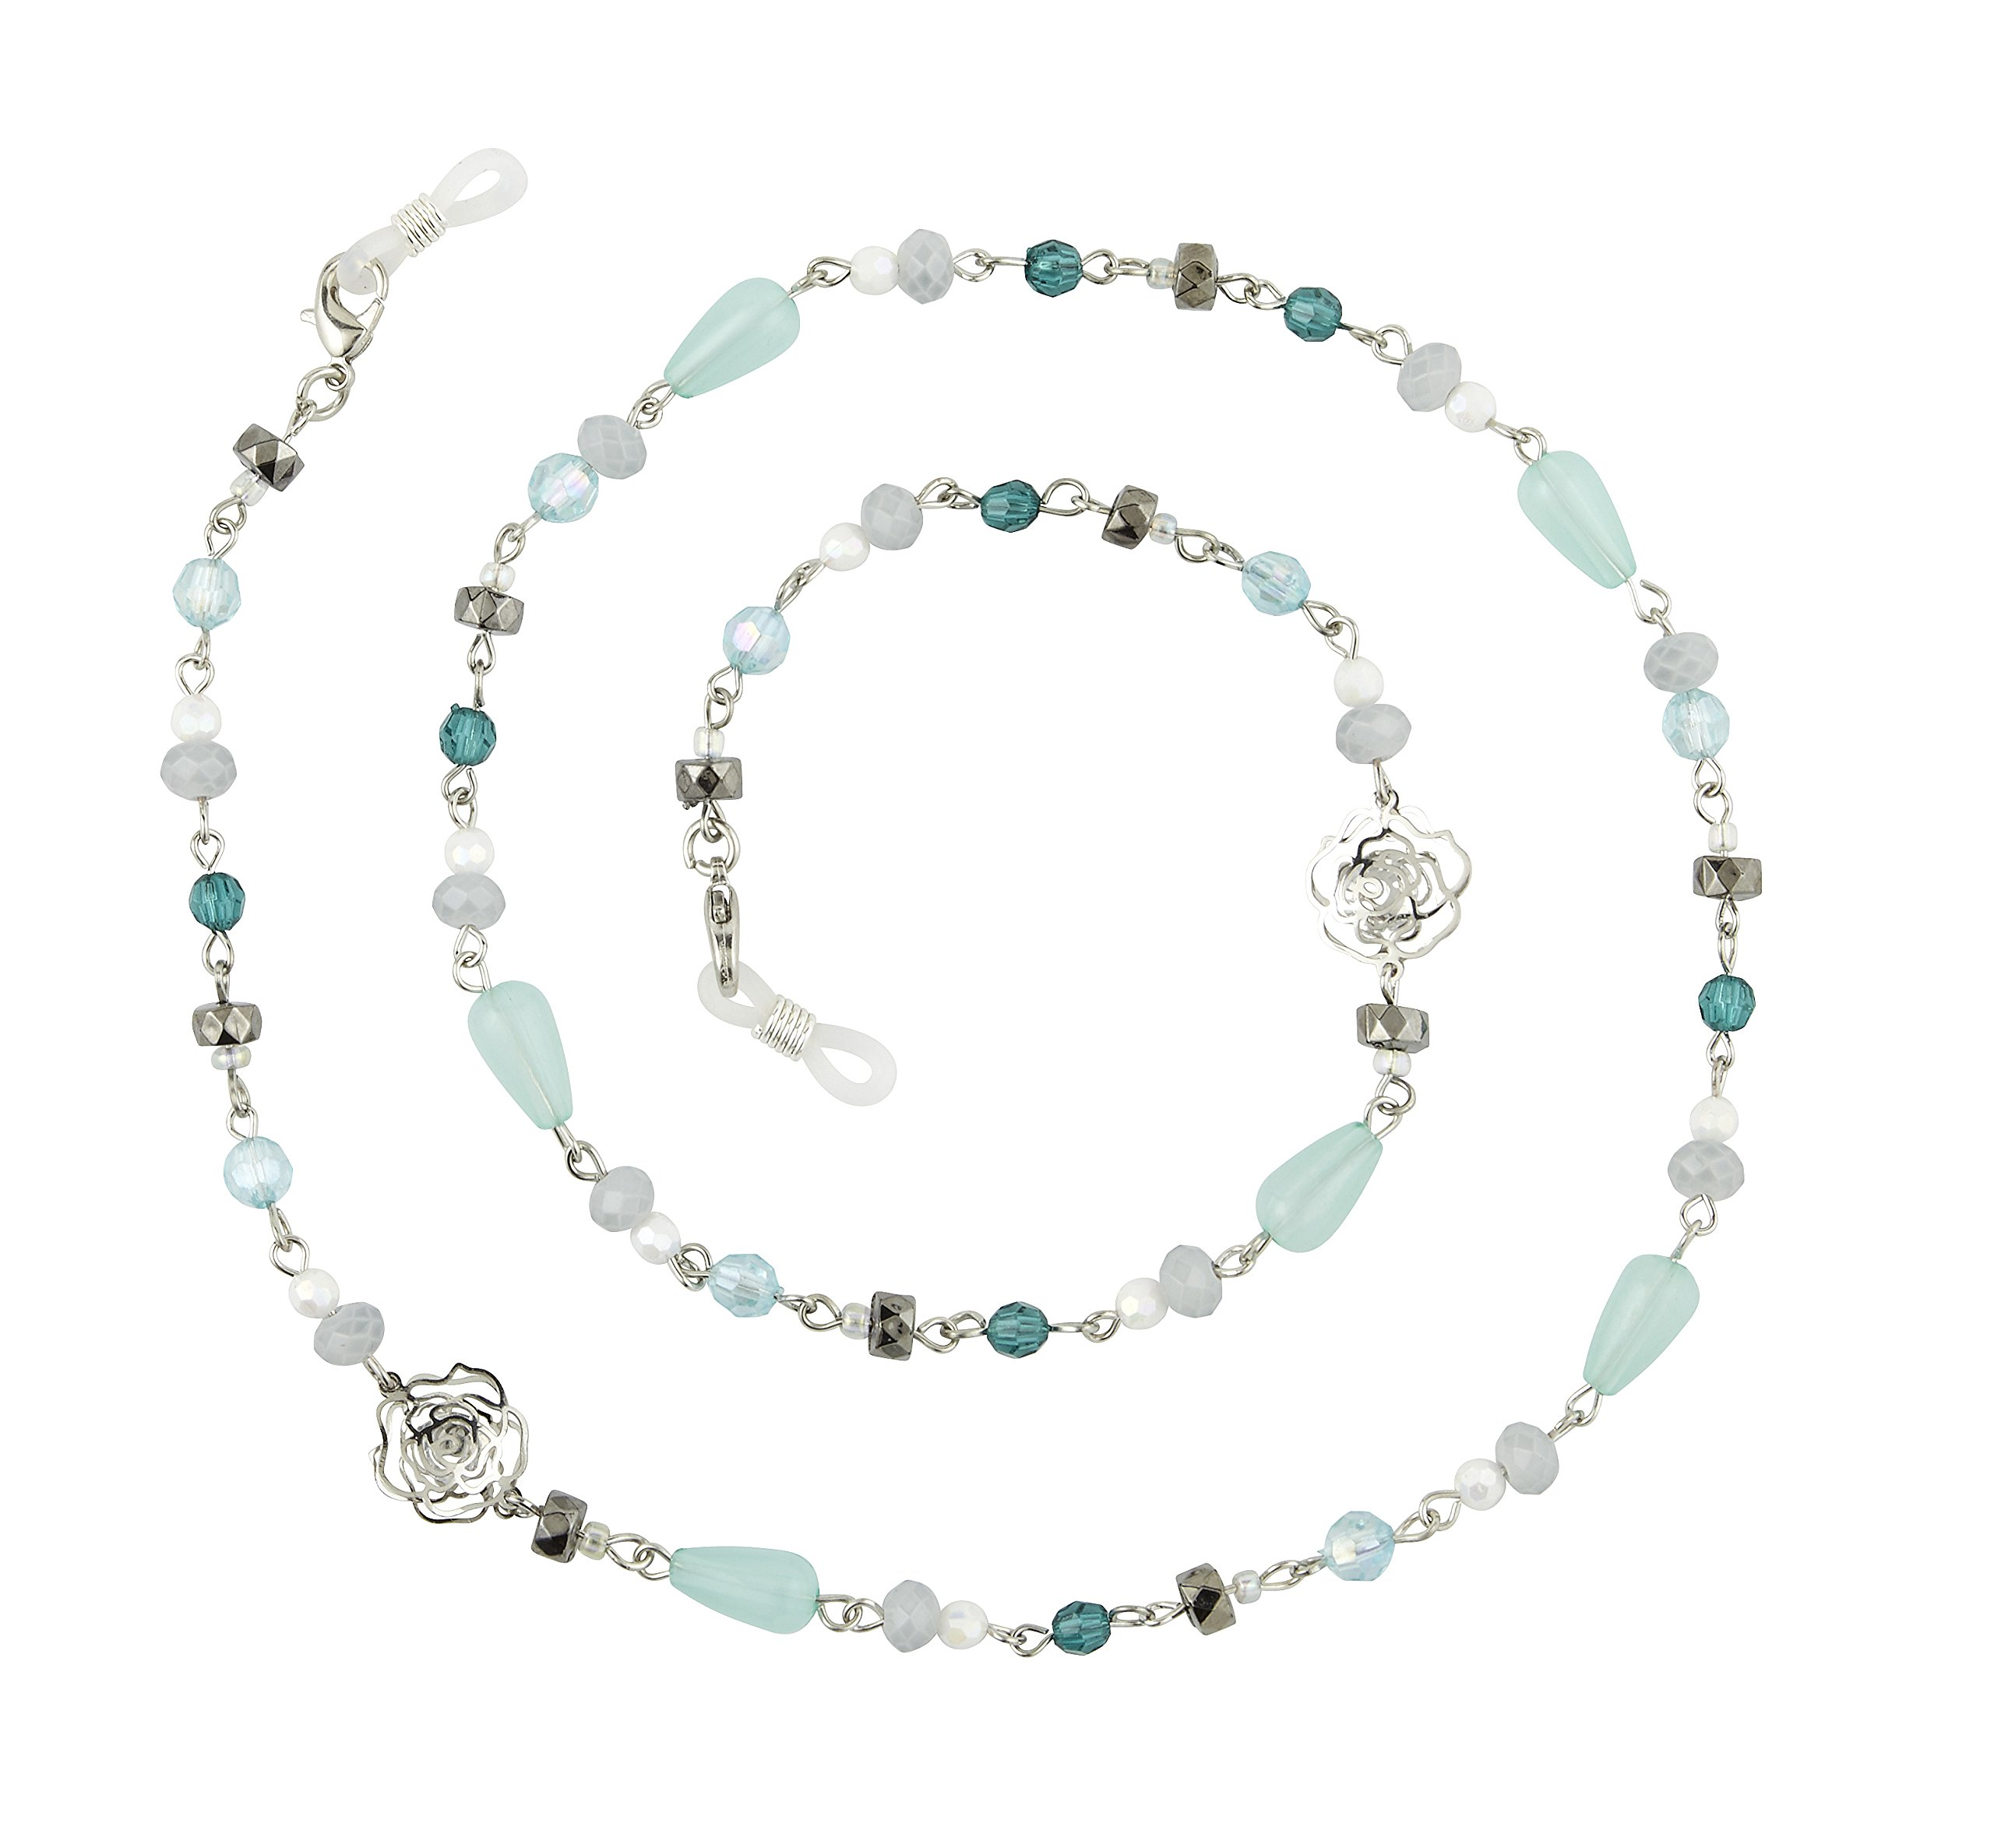 Beaded Eyeglass Chain Holder, Silver Or Gold Fashion Lanyard Necklace, Giselle Blue